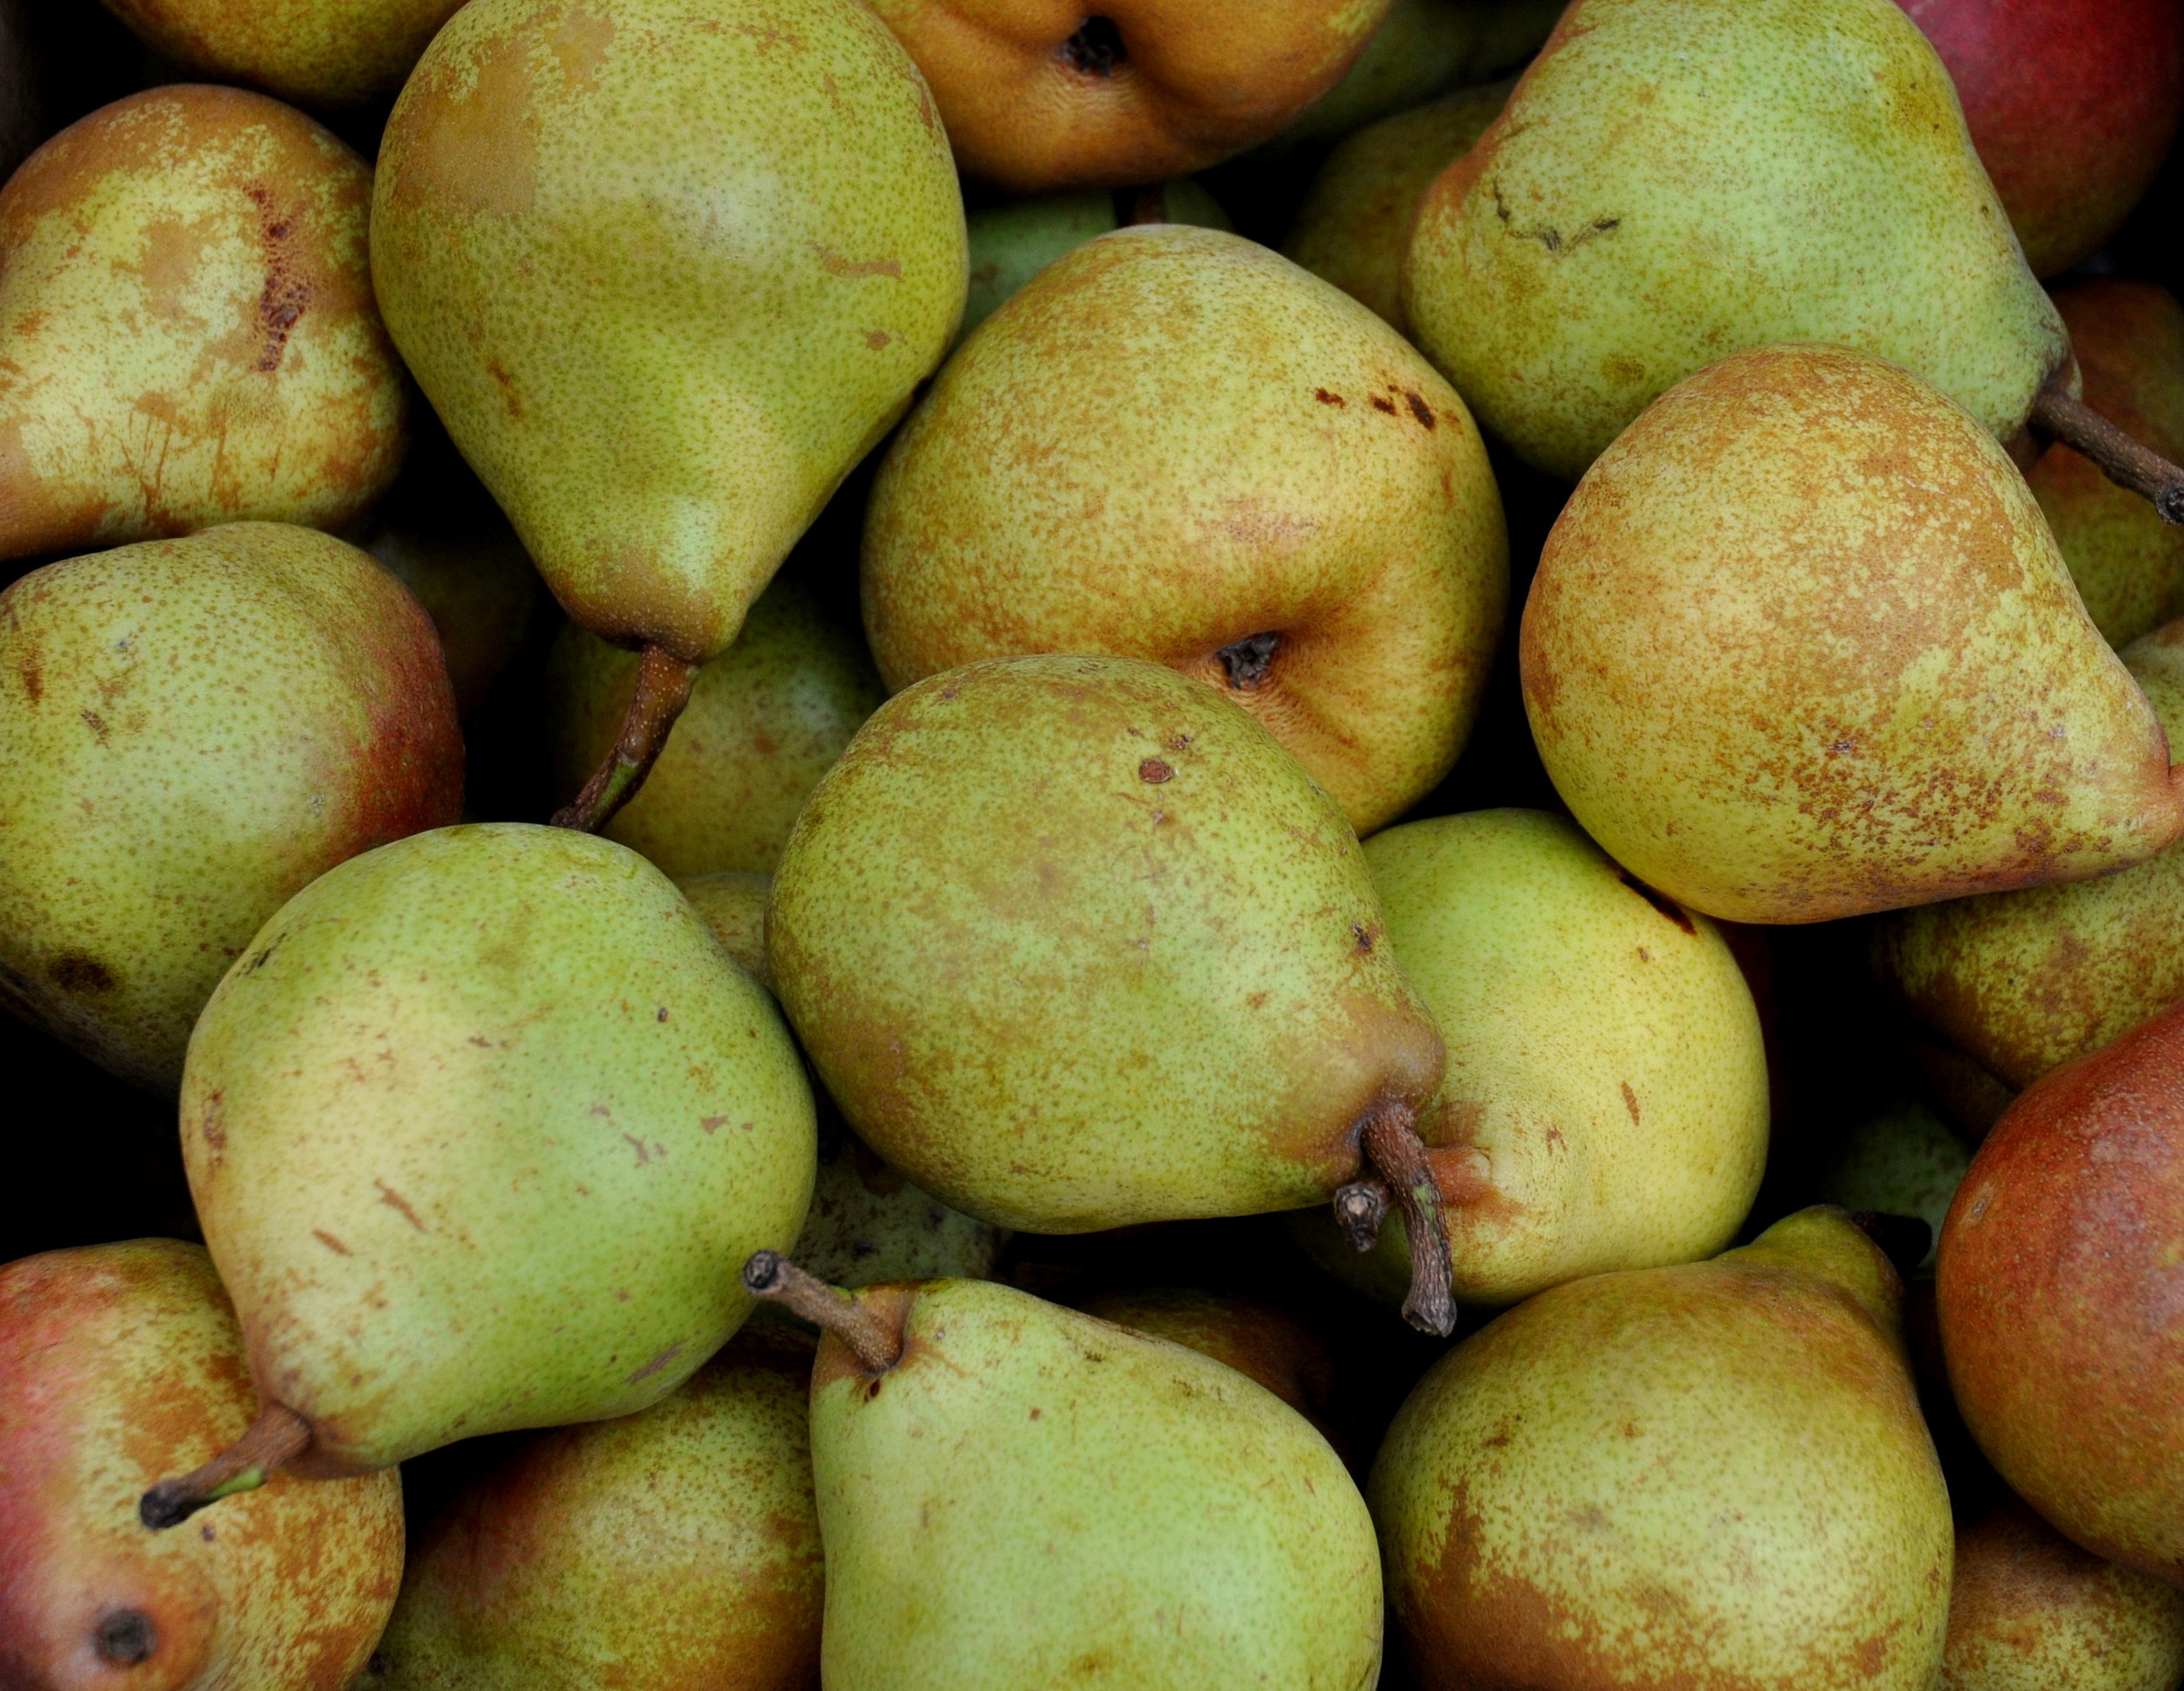 Taylor's Gold pears from Booth Canyon Orchard. Photo copyright 2013 by Zachary D. Lyons.